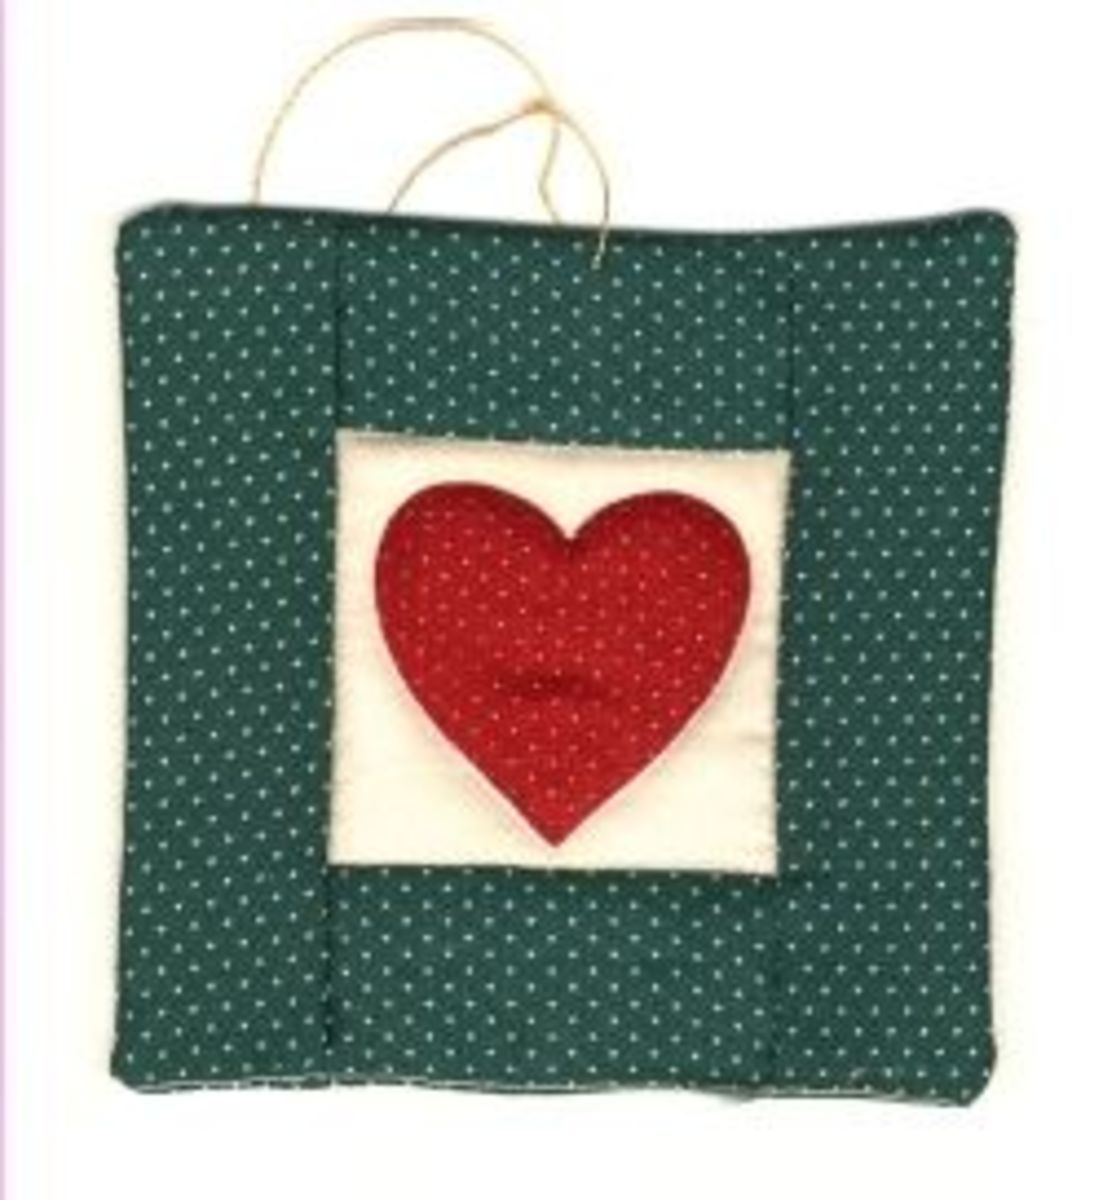 quilted heart handmade christmas tree ornaments hubpages - Handmade Christmas Tree Ornaments